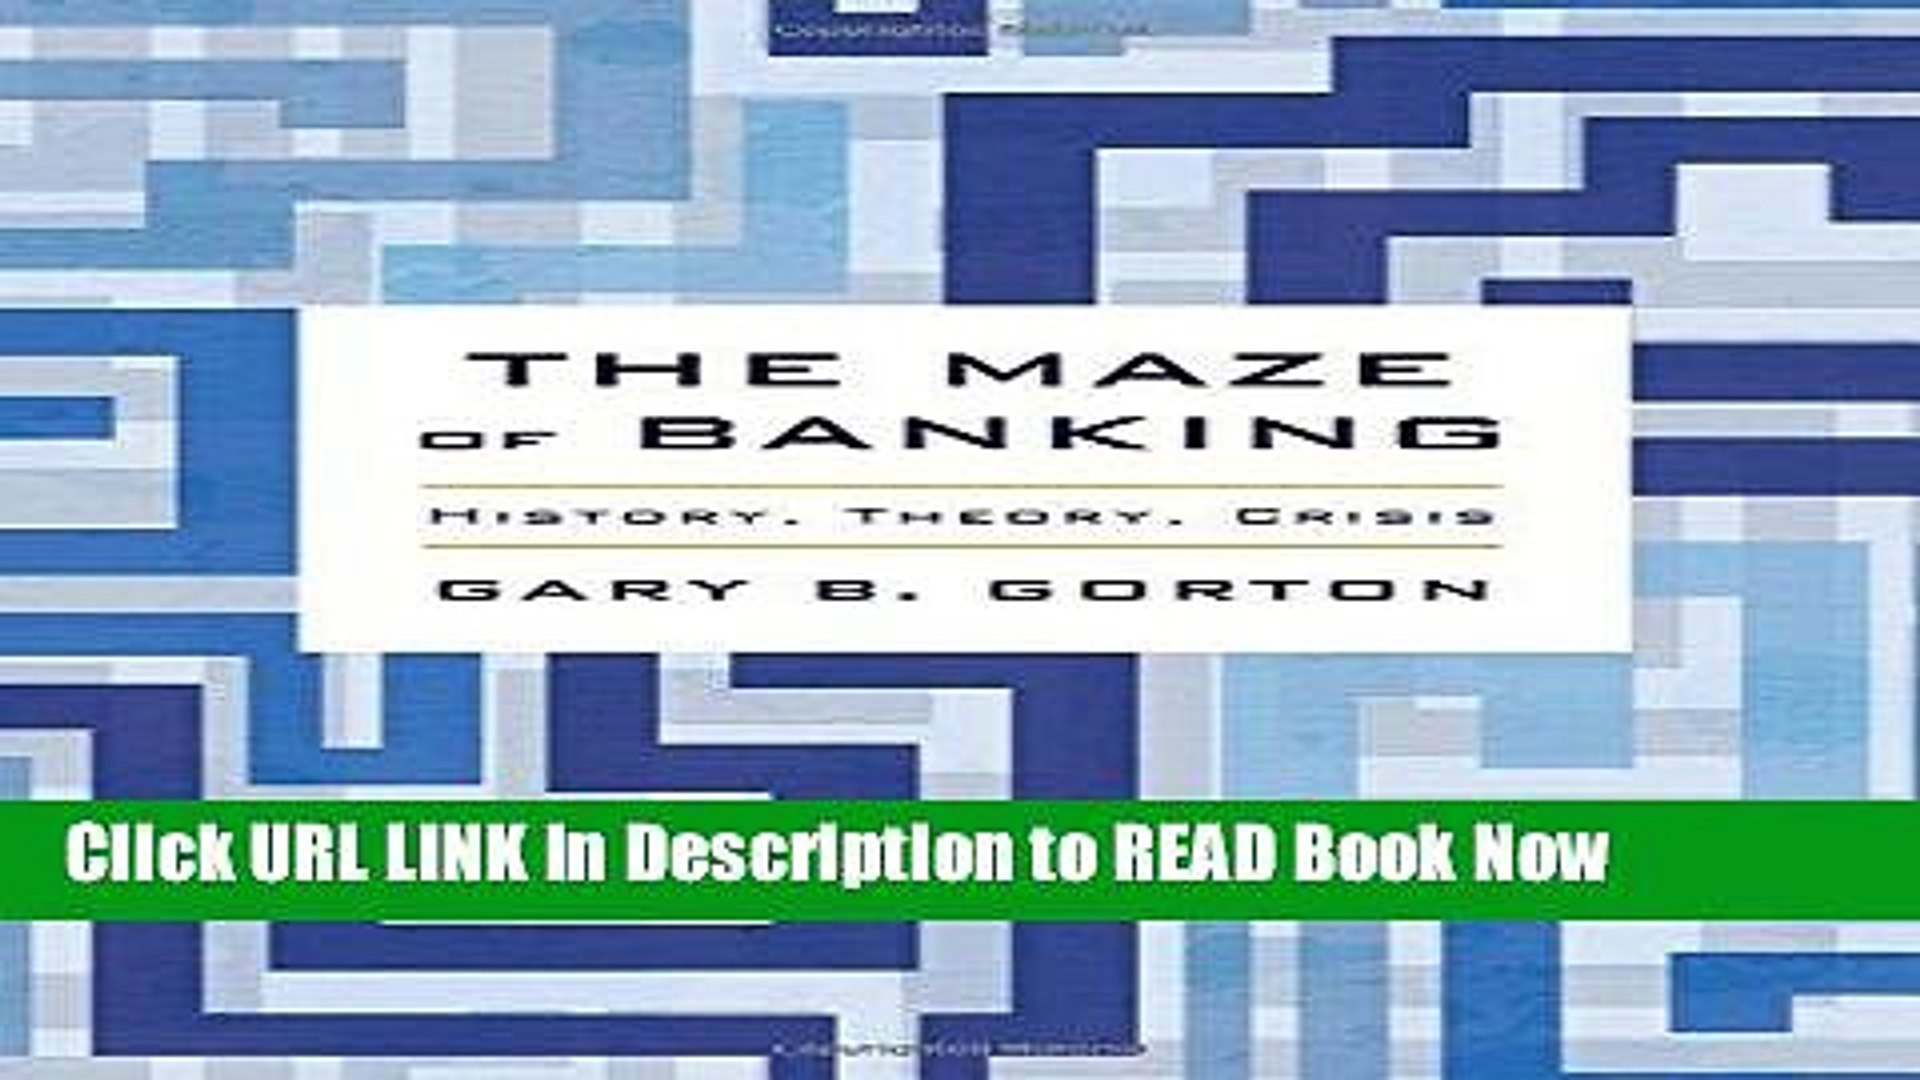 [DOWNLOAD] The Maze of Banking: History, Theory, Crisis Full Online